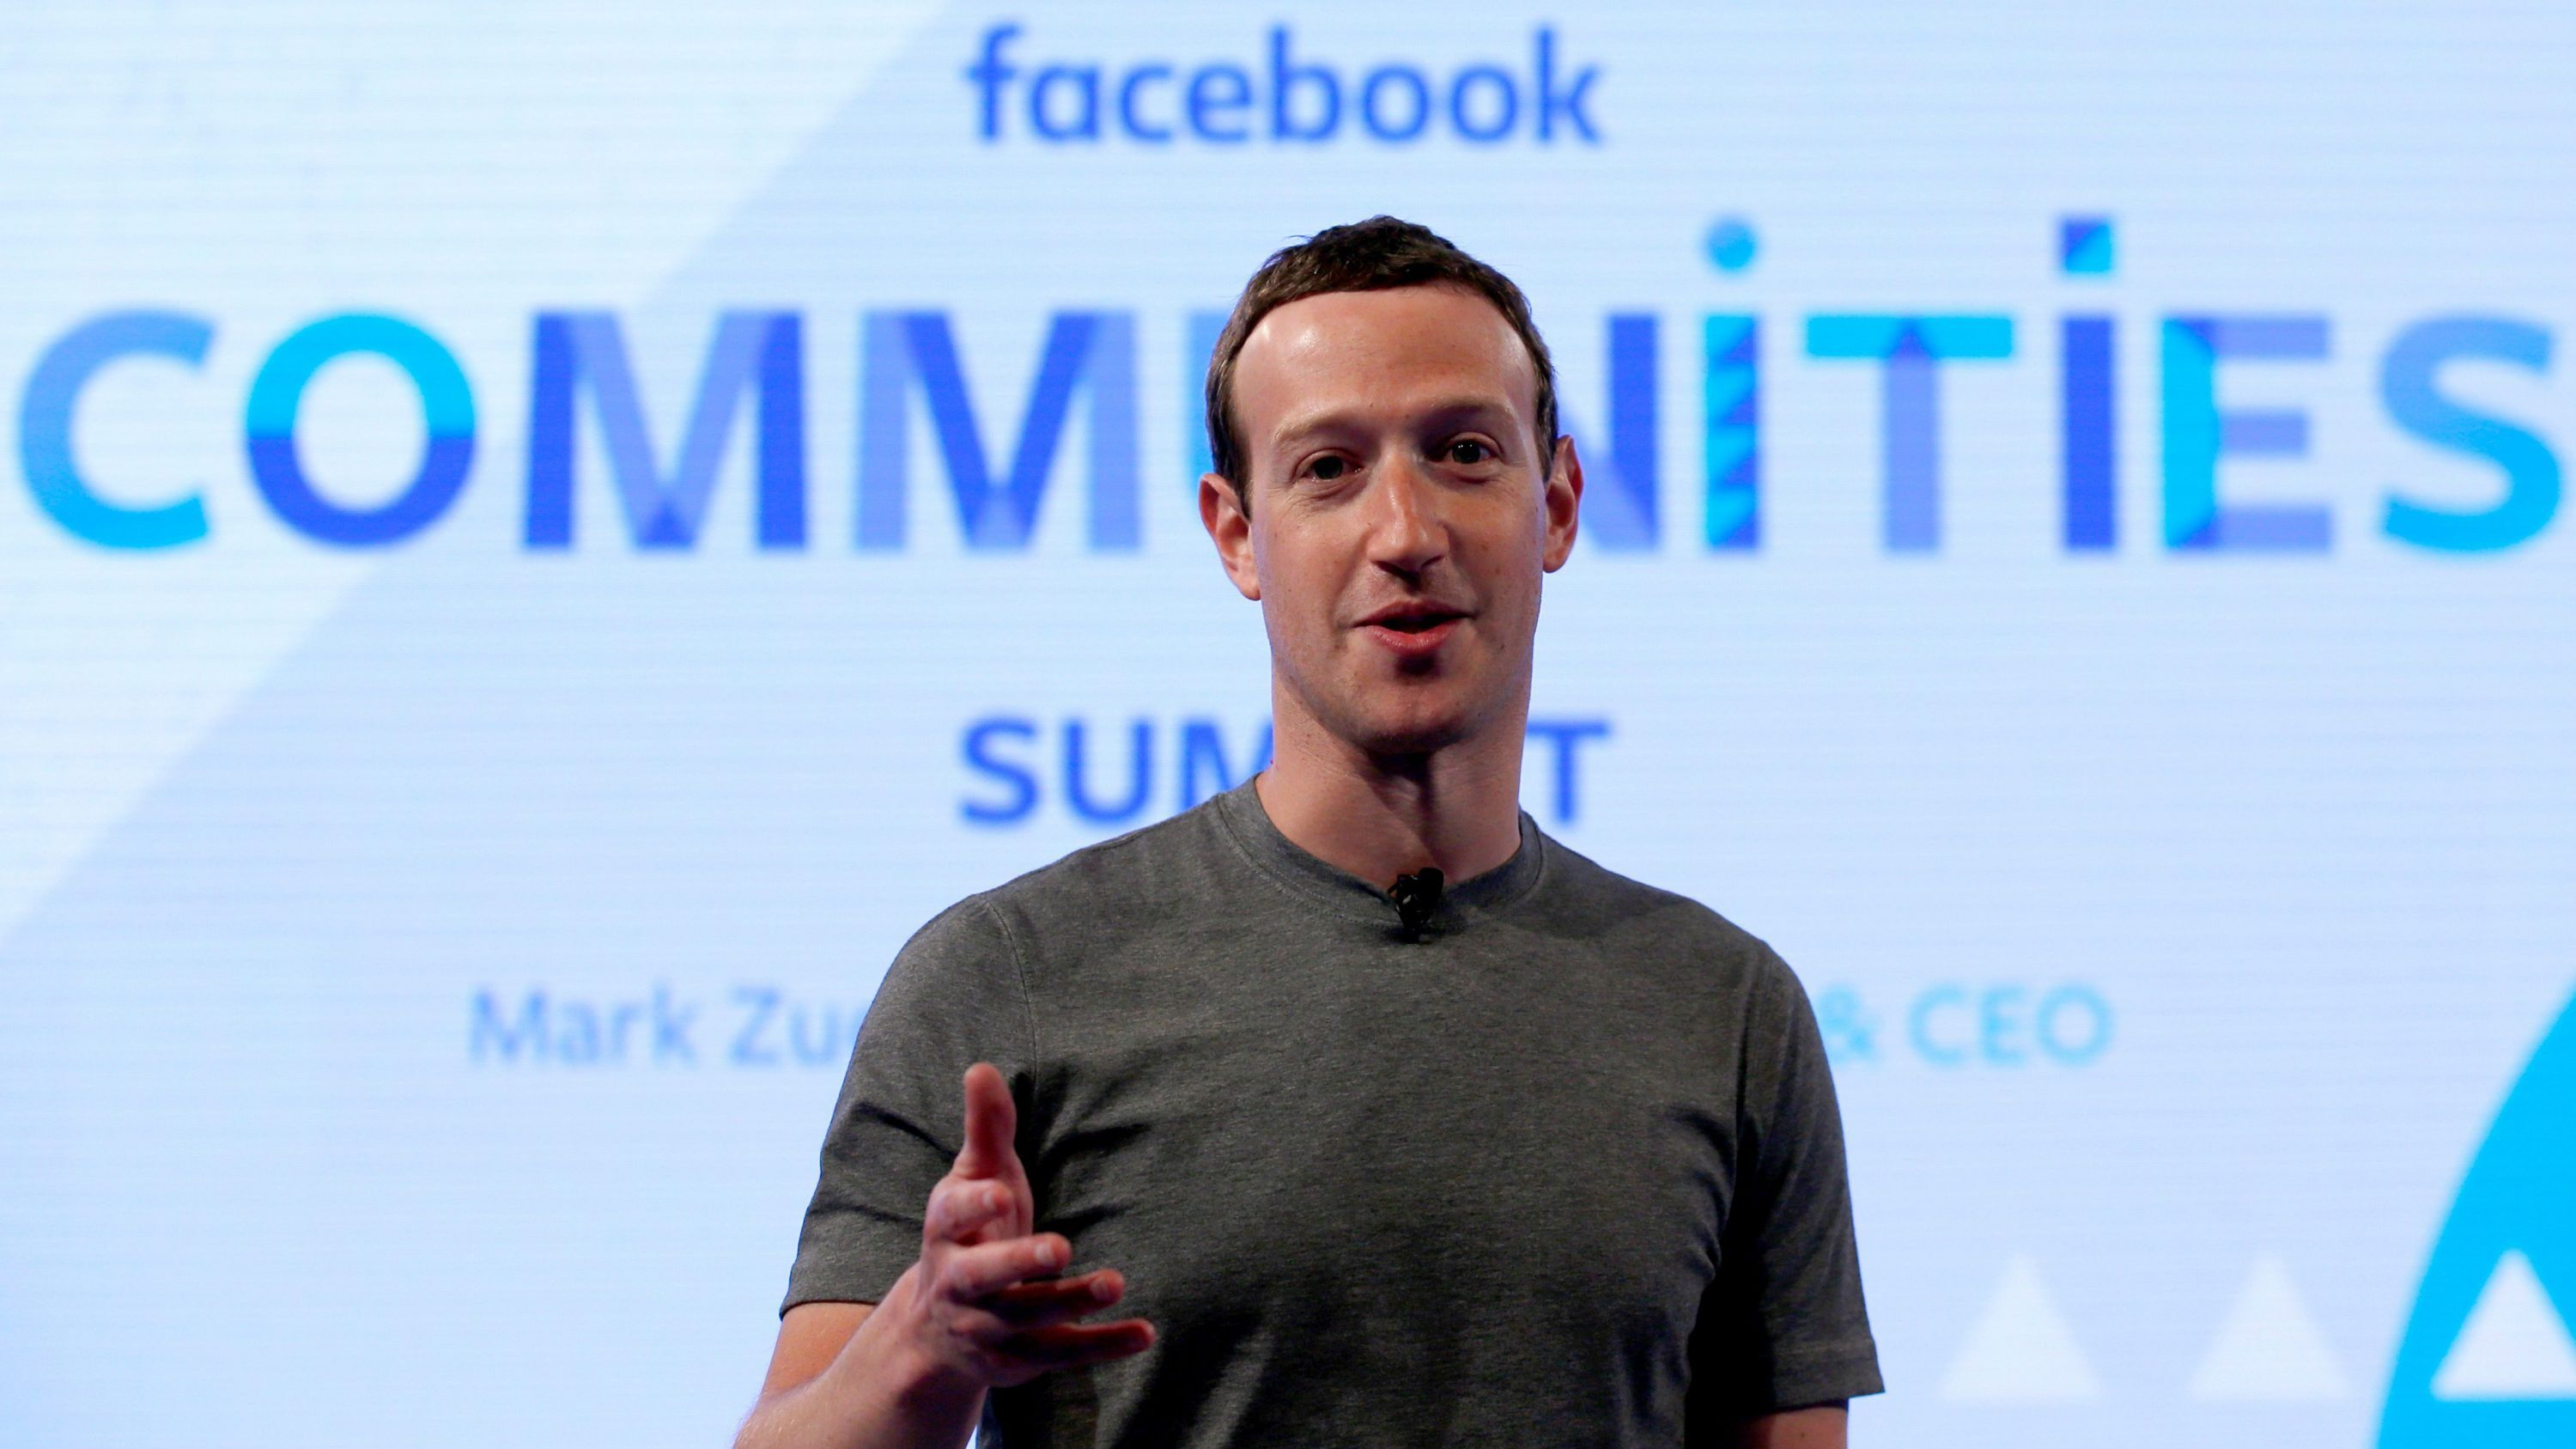 """FILE - In this Wednesday, June 21, 2017, file photo, Facebook CEO Mark Zuckerberg speaks as he prepares for the Facebook Communities Summit in Chicago. Facebook is once again tweaking the formula it uses to decide what people see in their news feed to focus more on personal connections and take the spotlight off brands and news articles. Facebook says it will highlight posts people are most likely to engage with and make time spent on social media more """"meaningful."""""""